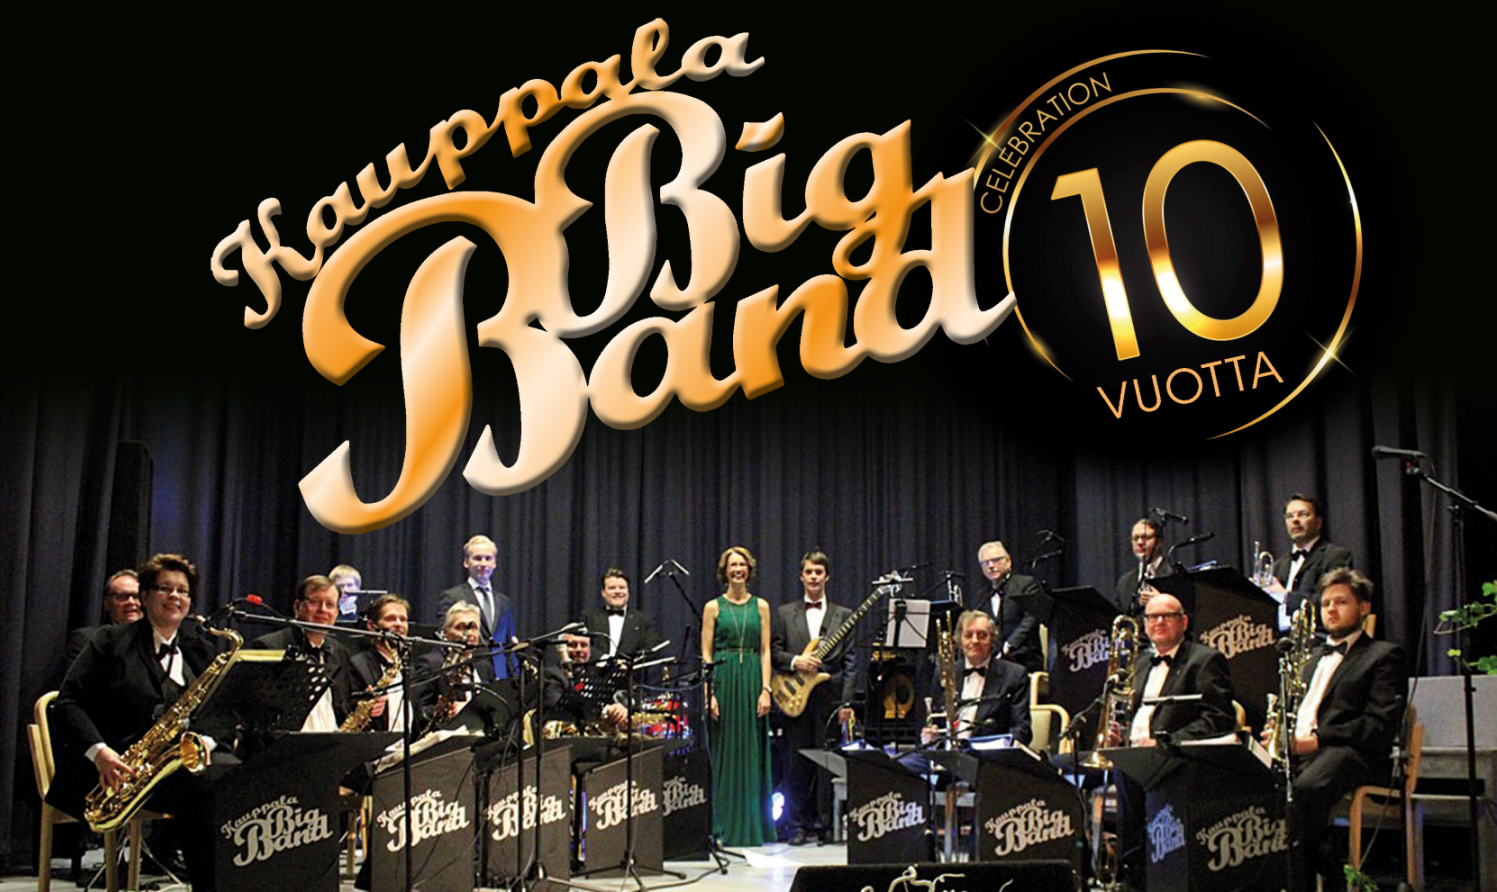 Kauppala Big Band